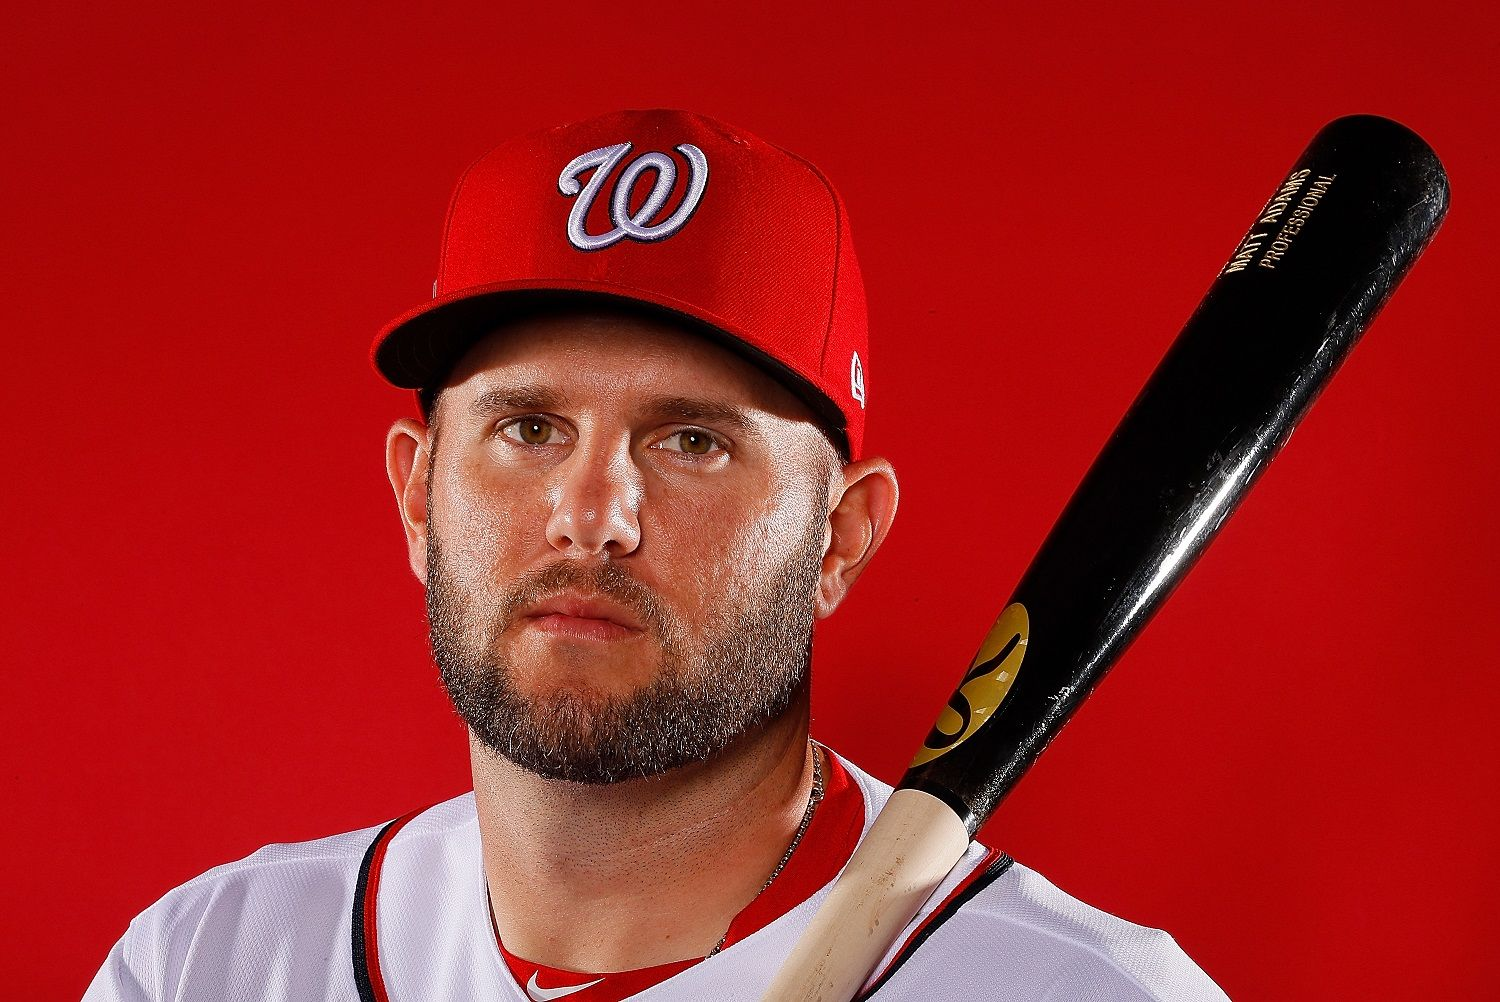 WEST PALM BEACH, FL - FEBRUARY 22:  Matt Adams #15 of the Washington Nationals poses for a photo during photo days at The Ballpark of the Palm Beaches on February 22, 2018 in West Palm Beach, Florida.  (Photo by Kevin C. Cox/Getty Images)